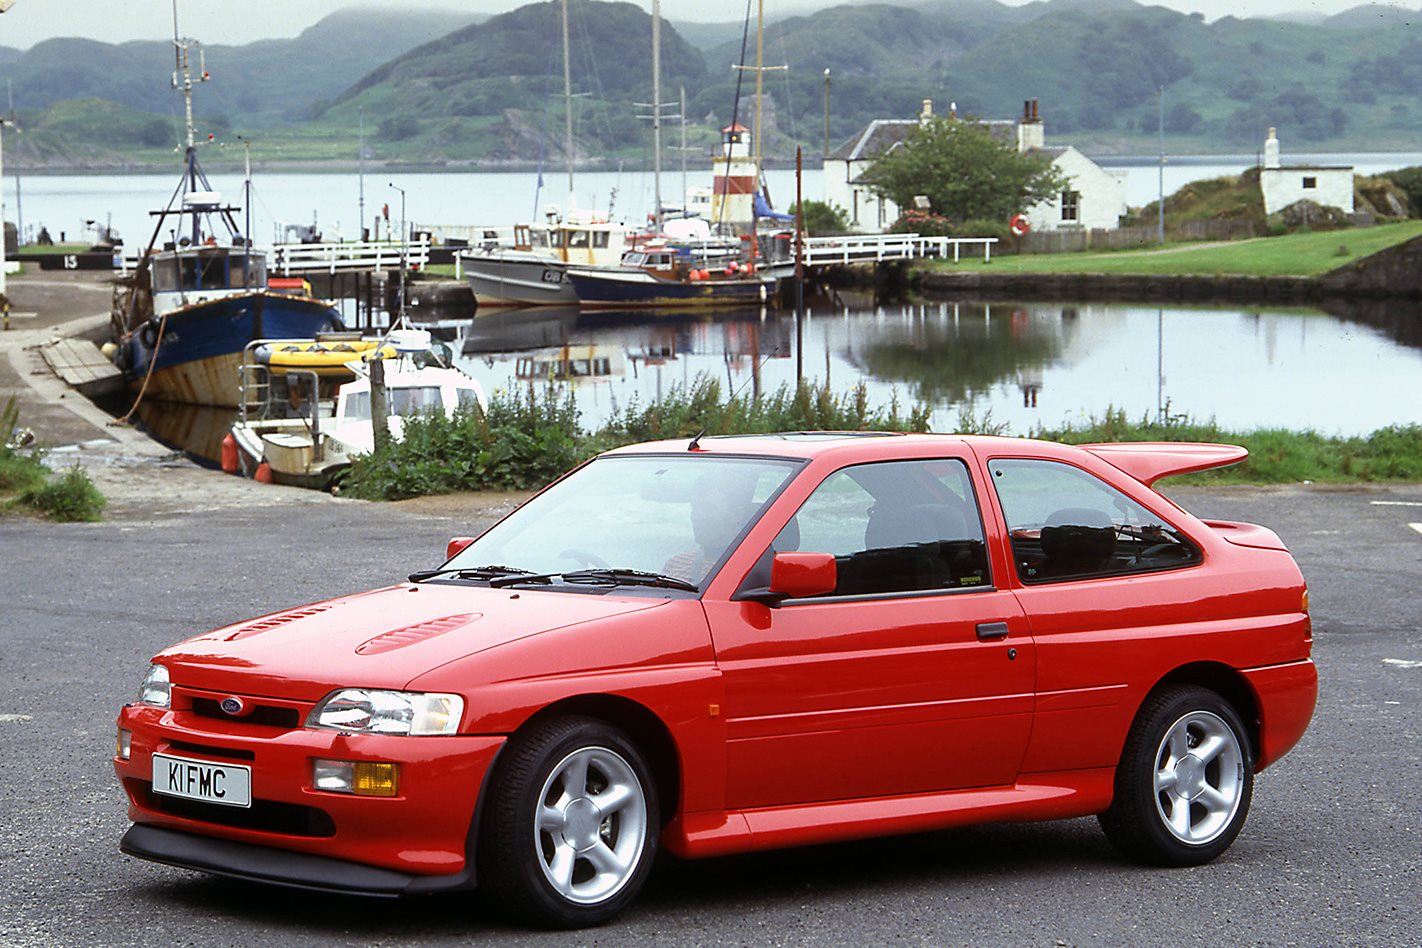 1992 Ford Escort RS Cosworth front